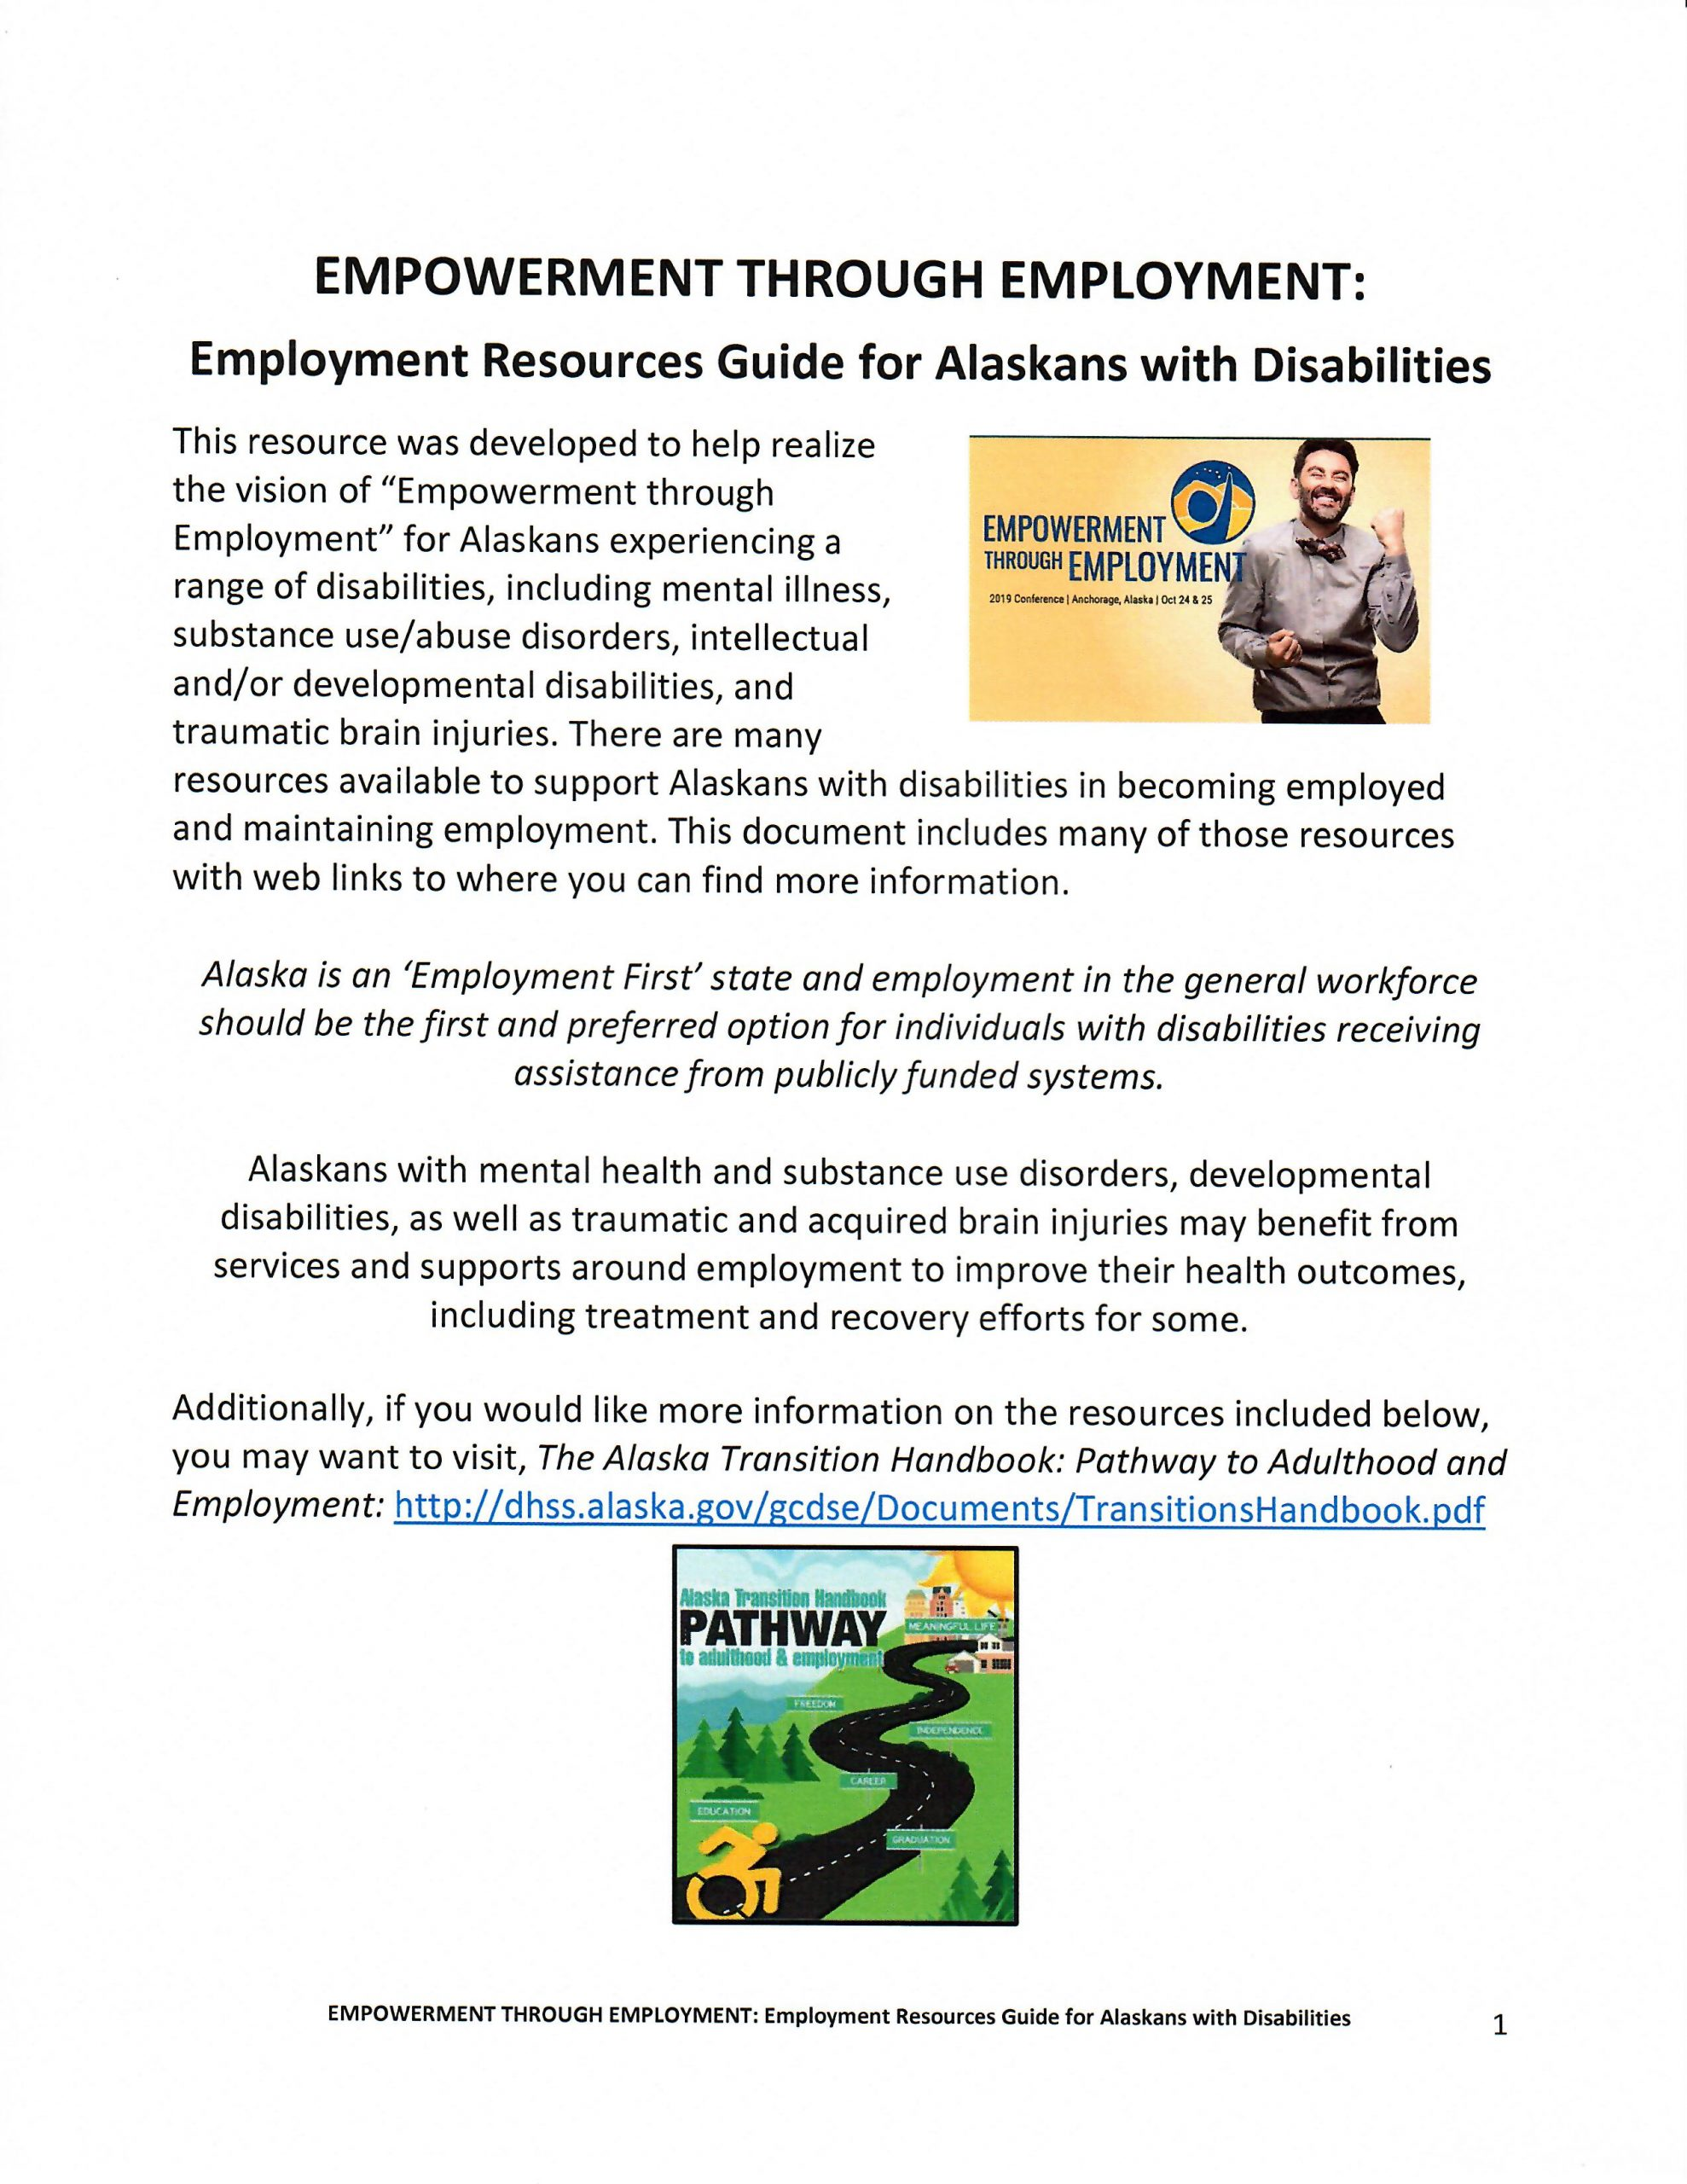 Empowerment Through Employment: Employment Resources Guide for Alaskans with Disabilities cover page